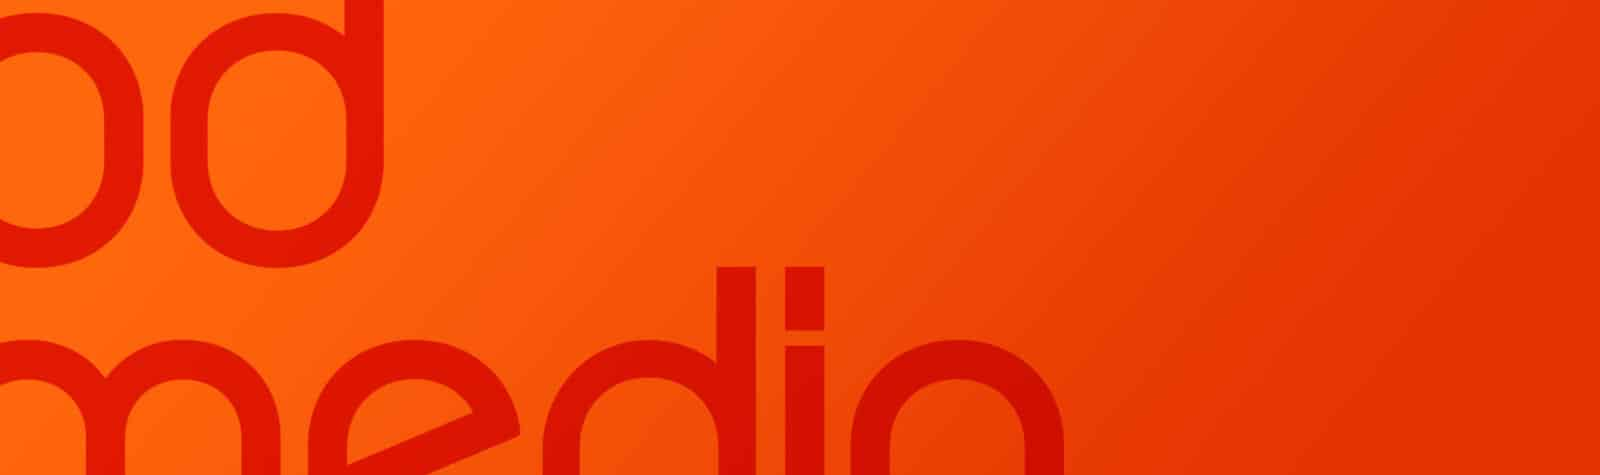 ODMedia Group Announces re-branding and Corporate Name